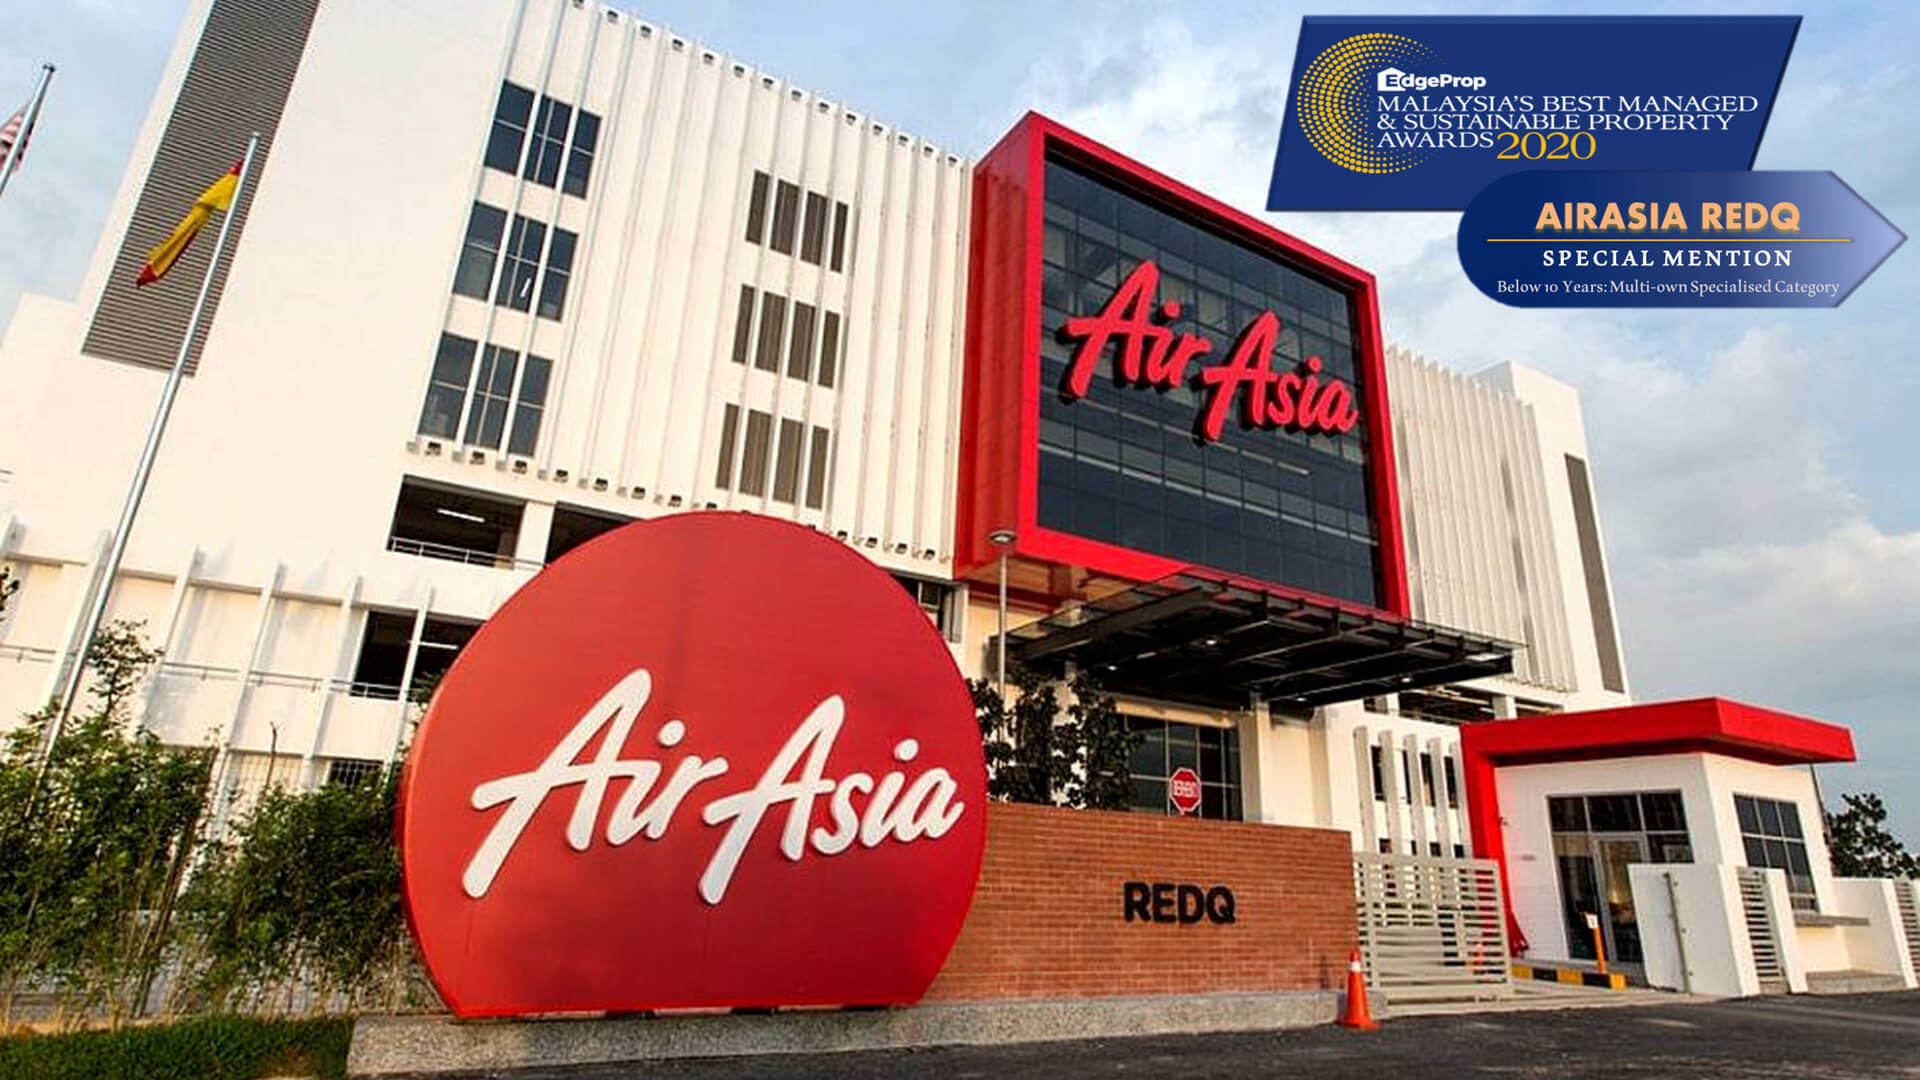 2020 Edgeprop - Special Mention (AirAsia)